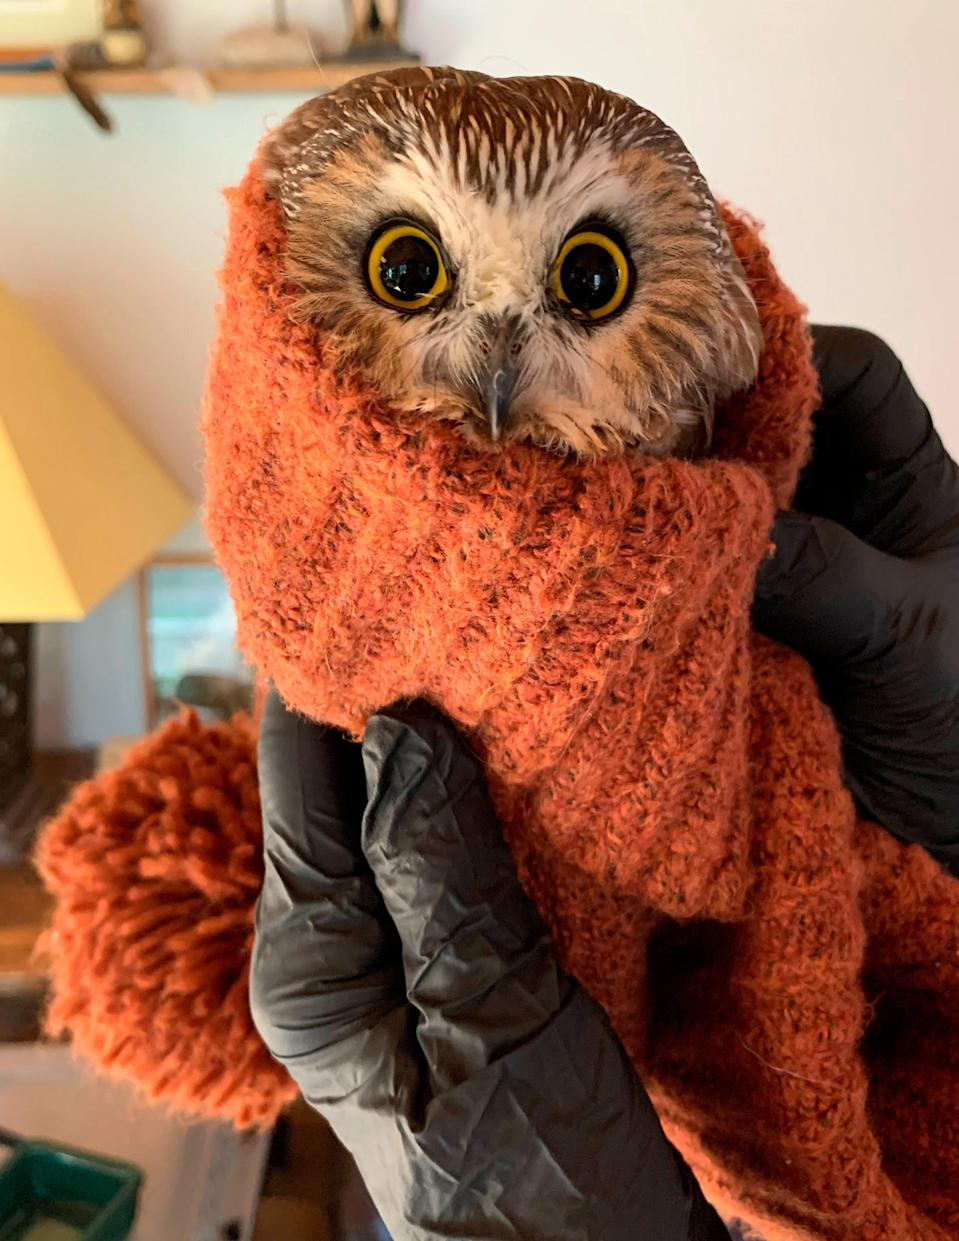 <p>Rockefeller, the owl found hiding in the iconic New York Christmas tree, has been released</p> (AP)